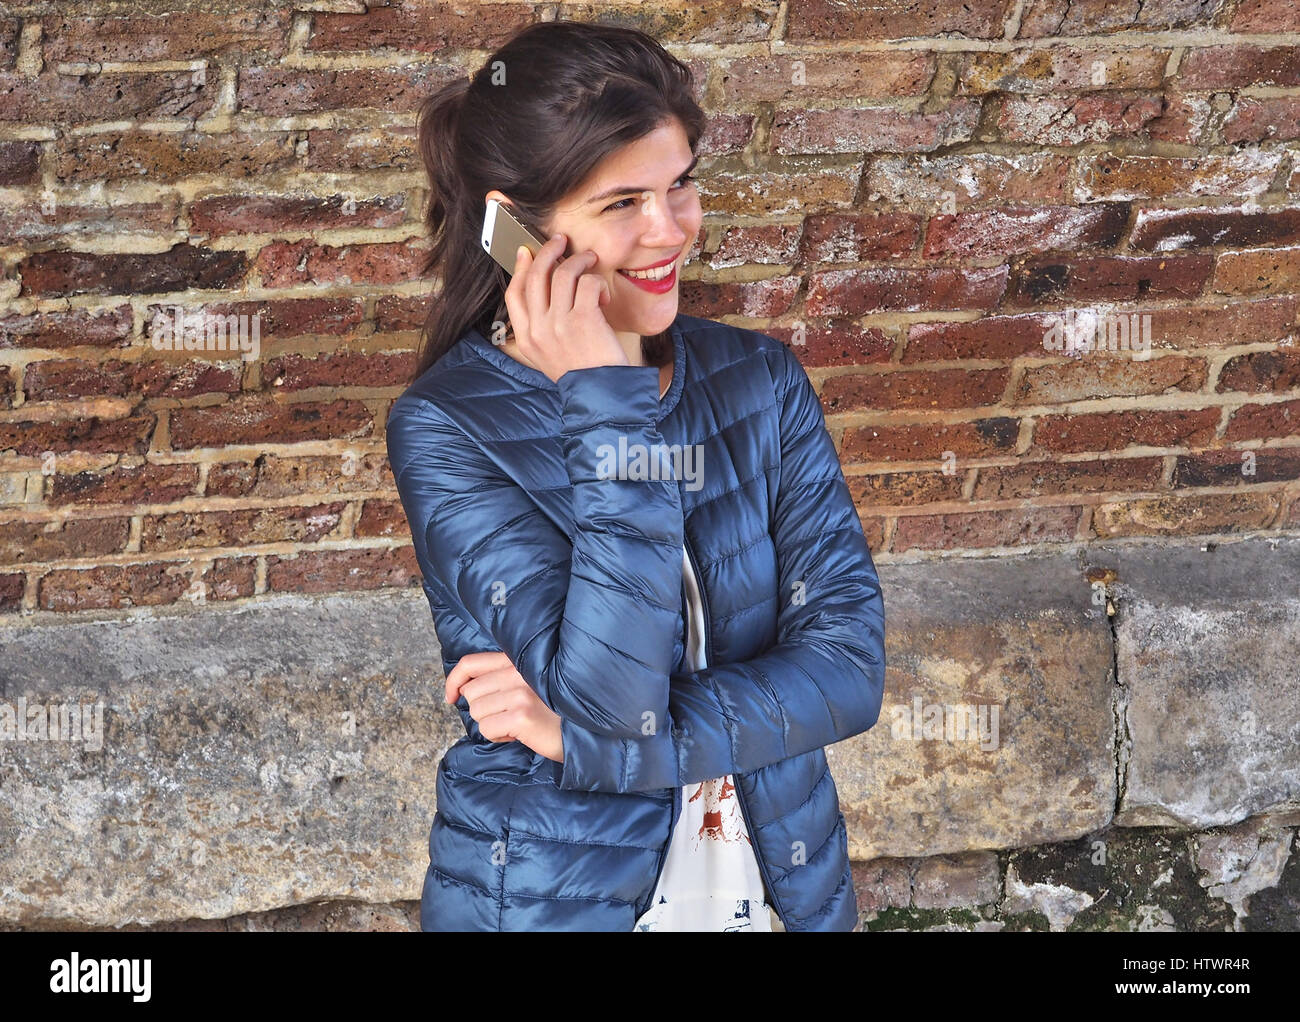 Smiling woman on the phone - Stock Image